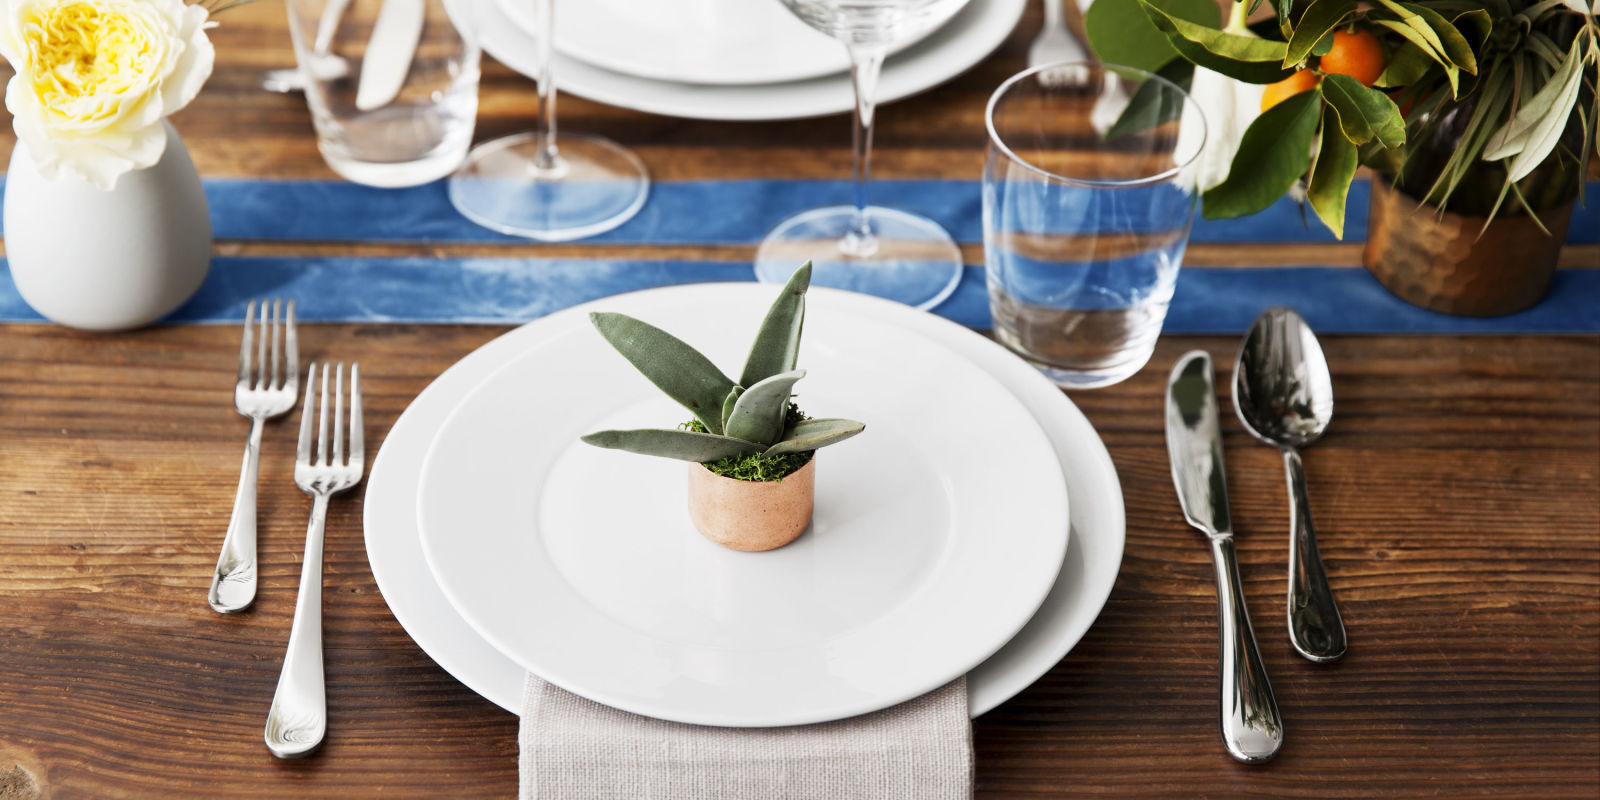 Fancy restaurant table setting - Tablescapes